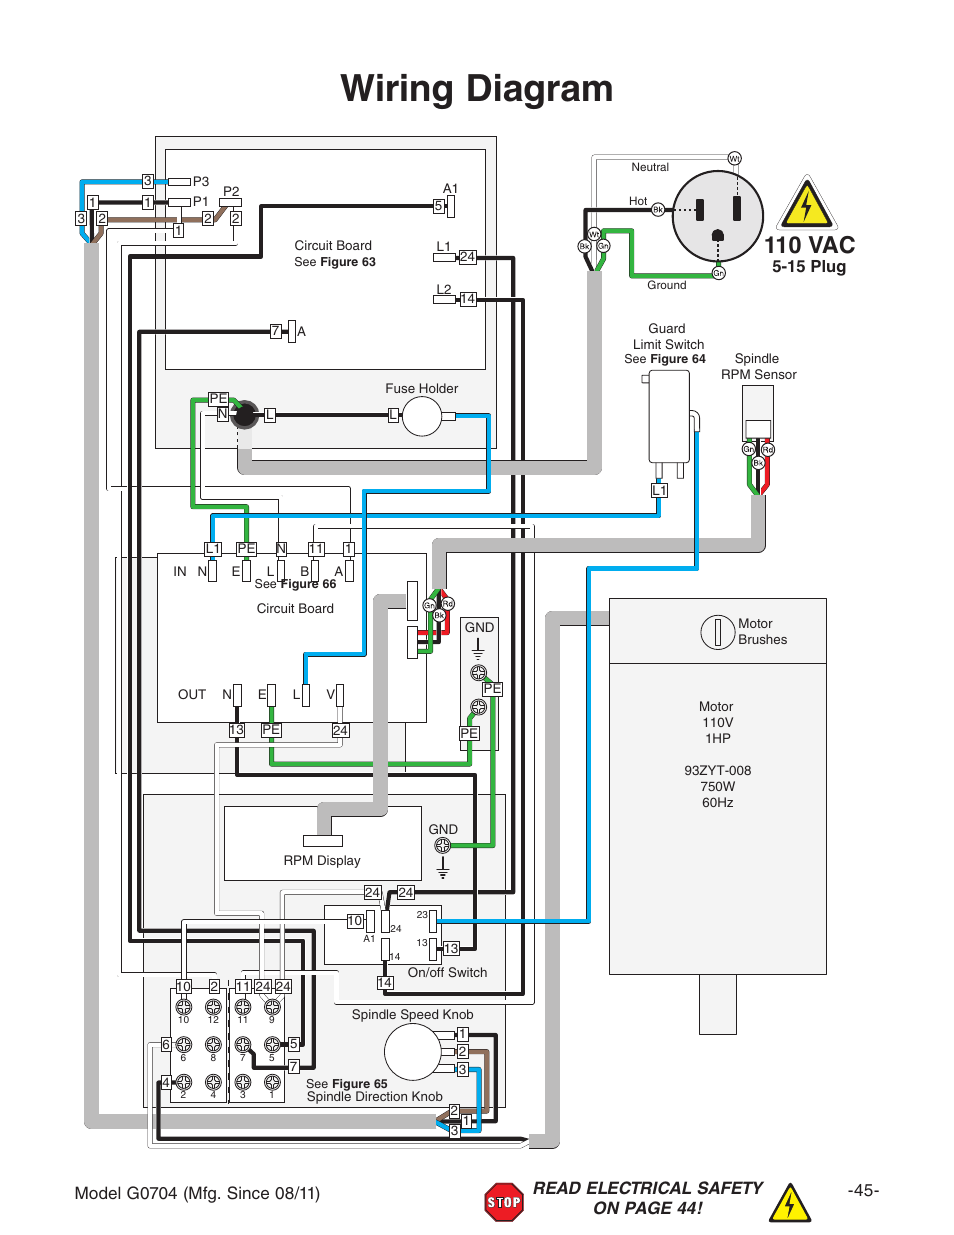 110 Vac Wiring Auto Electrical Diagram 56 Mercury Montclair